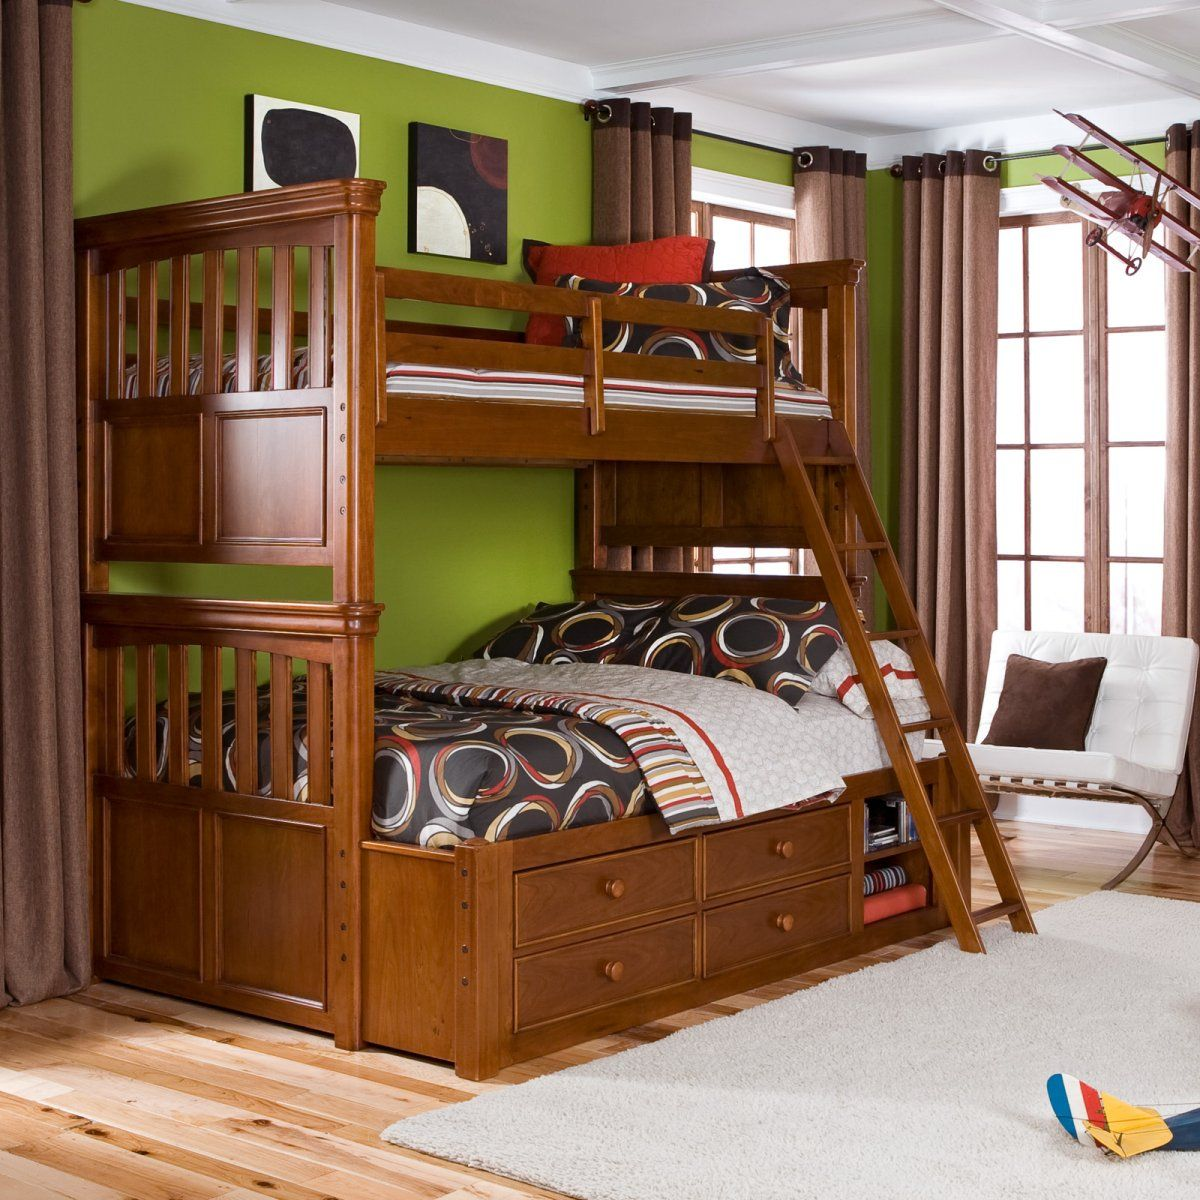 Spacious Bedroom using Wooden Wooden Bunk Beds with Lower Storages and Oak Ladder